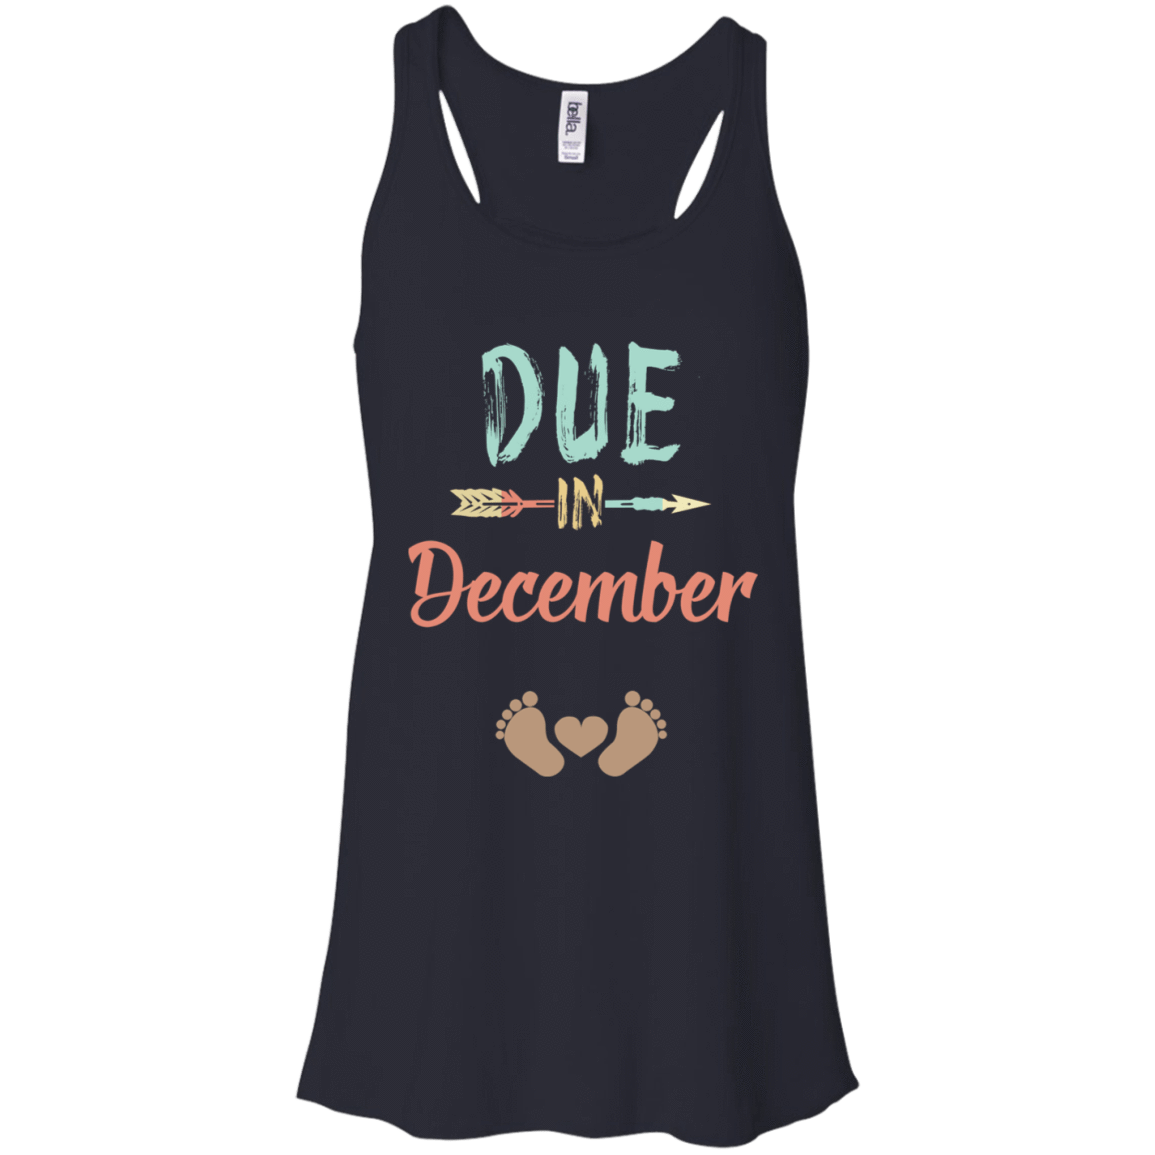 Due Date December 2019 Announcement Mommy Bump Pregnancy 974-9618-73890486-46774 - Tee Ript